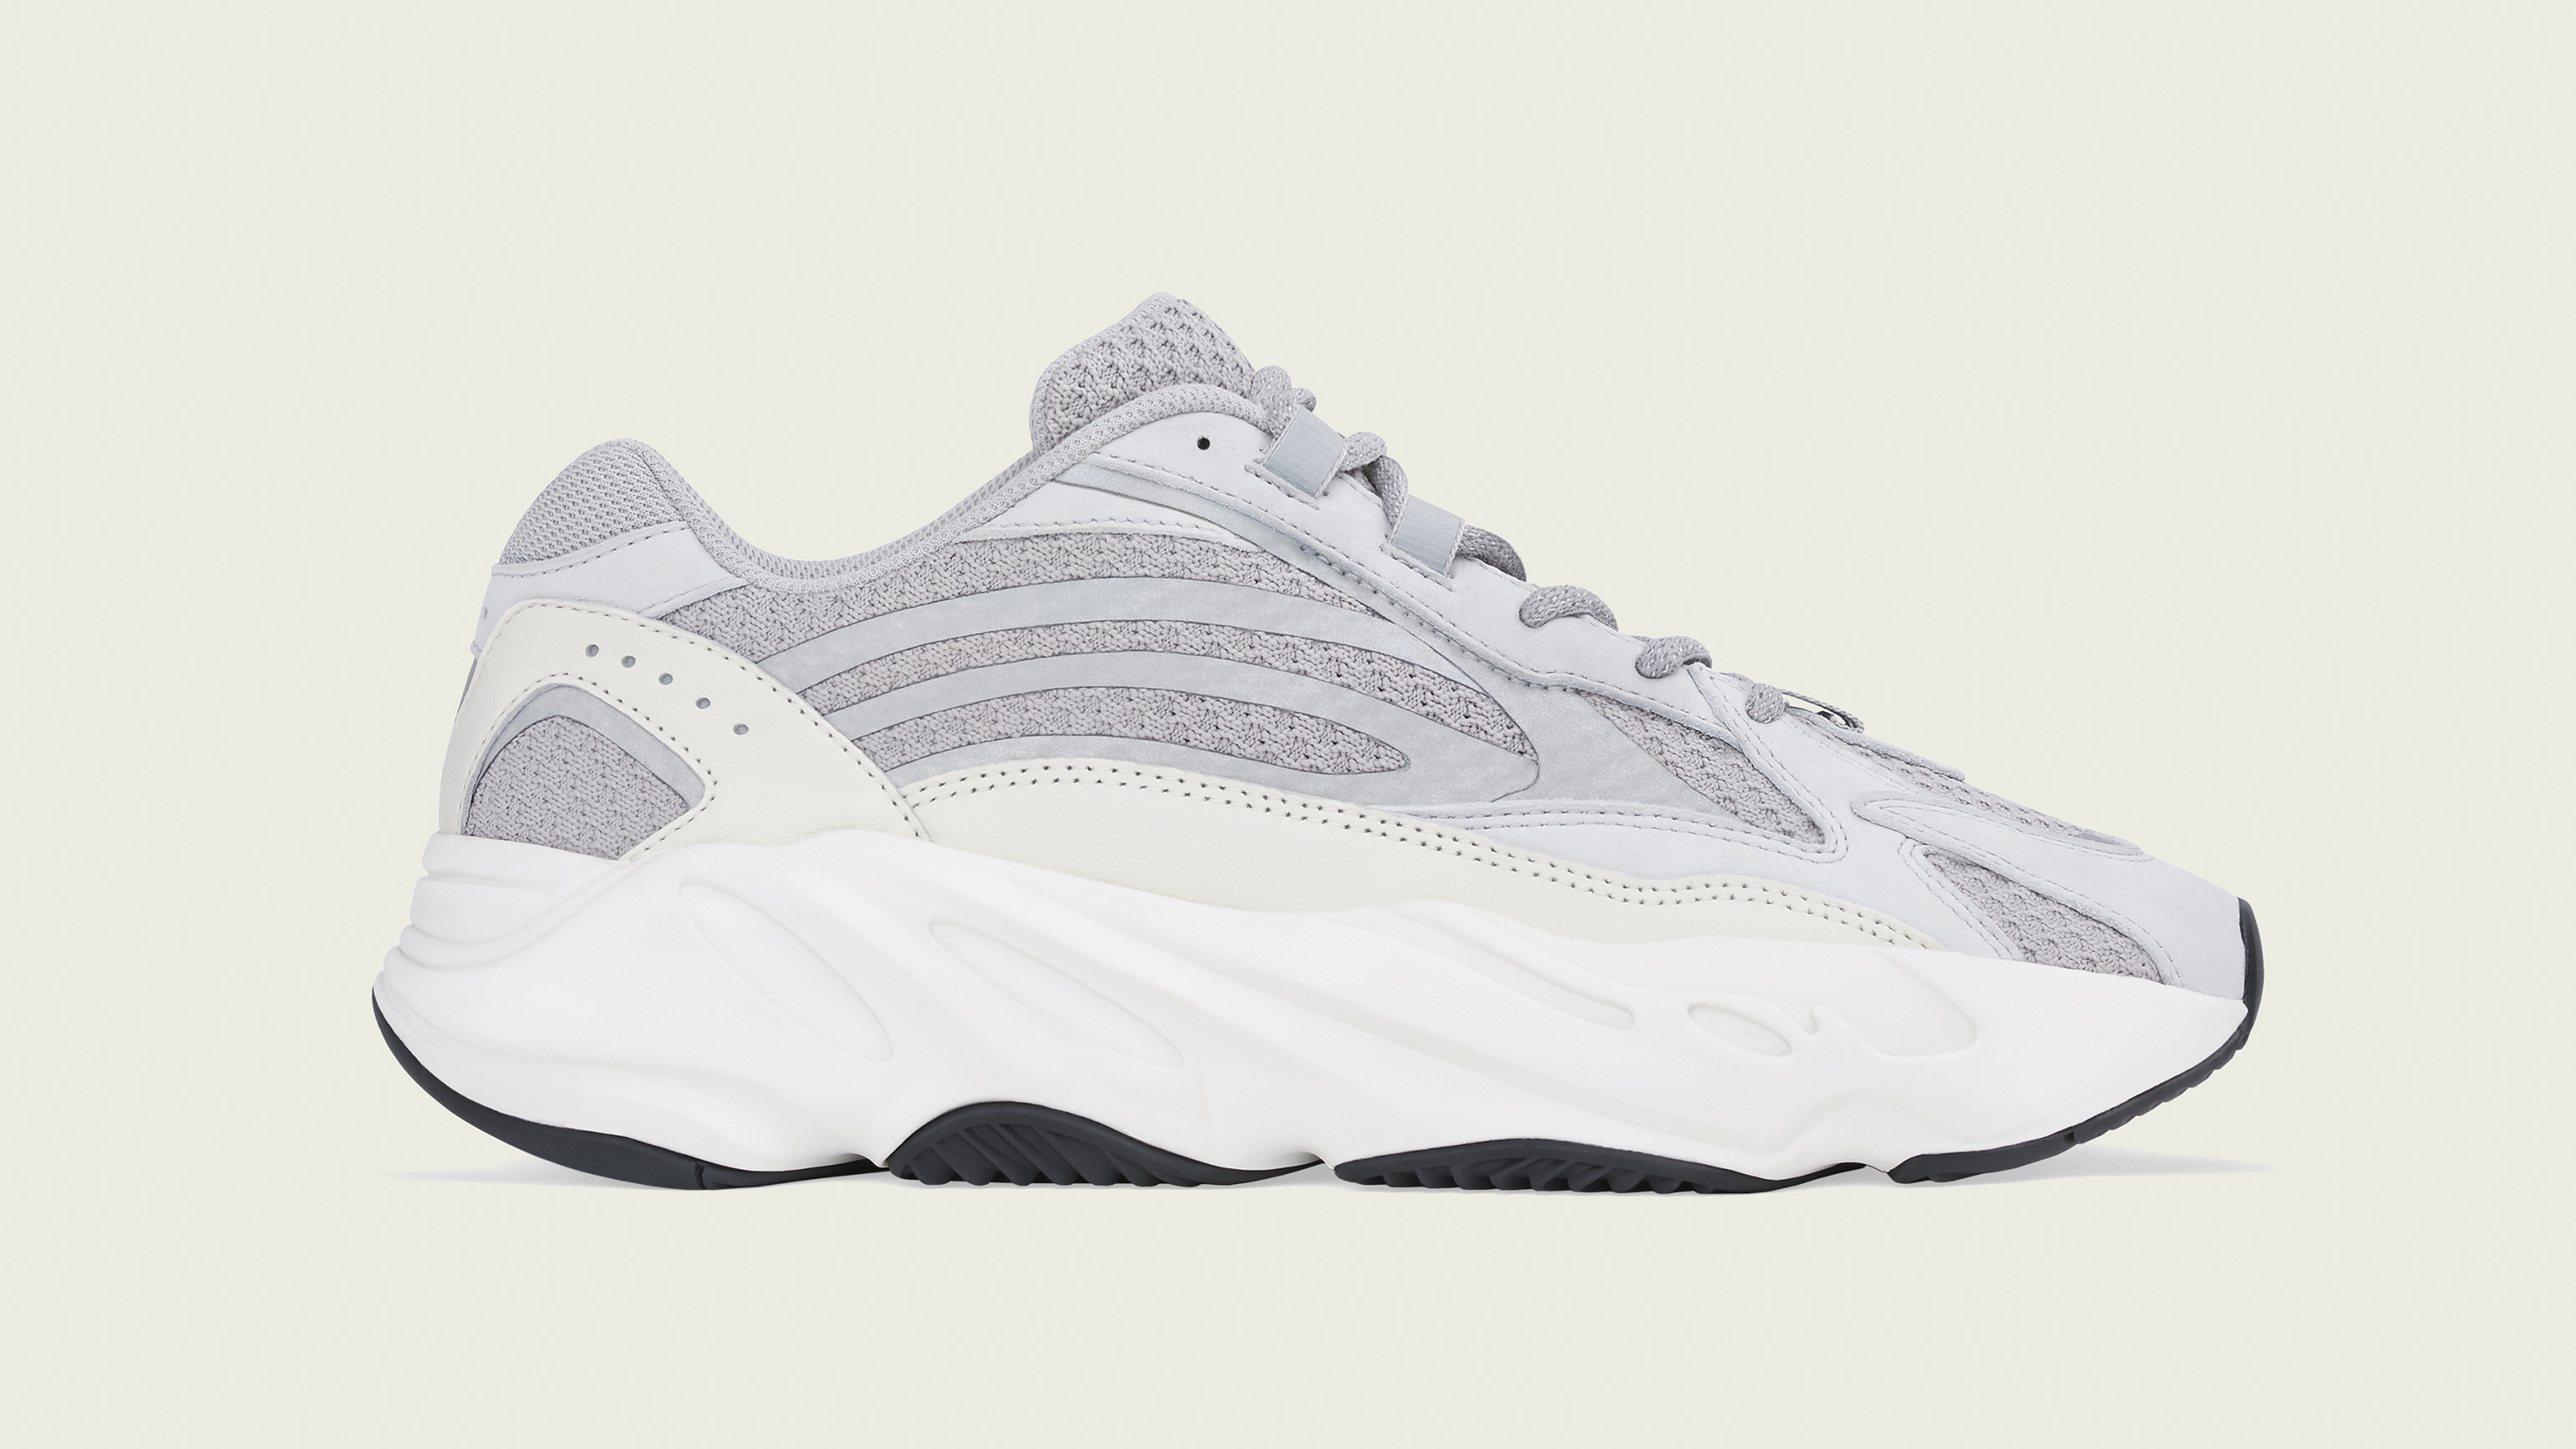 Mauve adidas Yeezy Boost 700 Release Date October 27, 2018